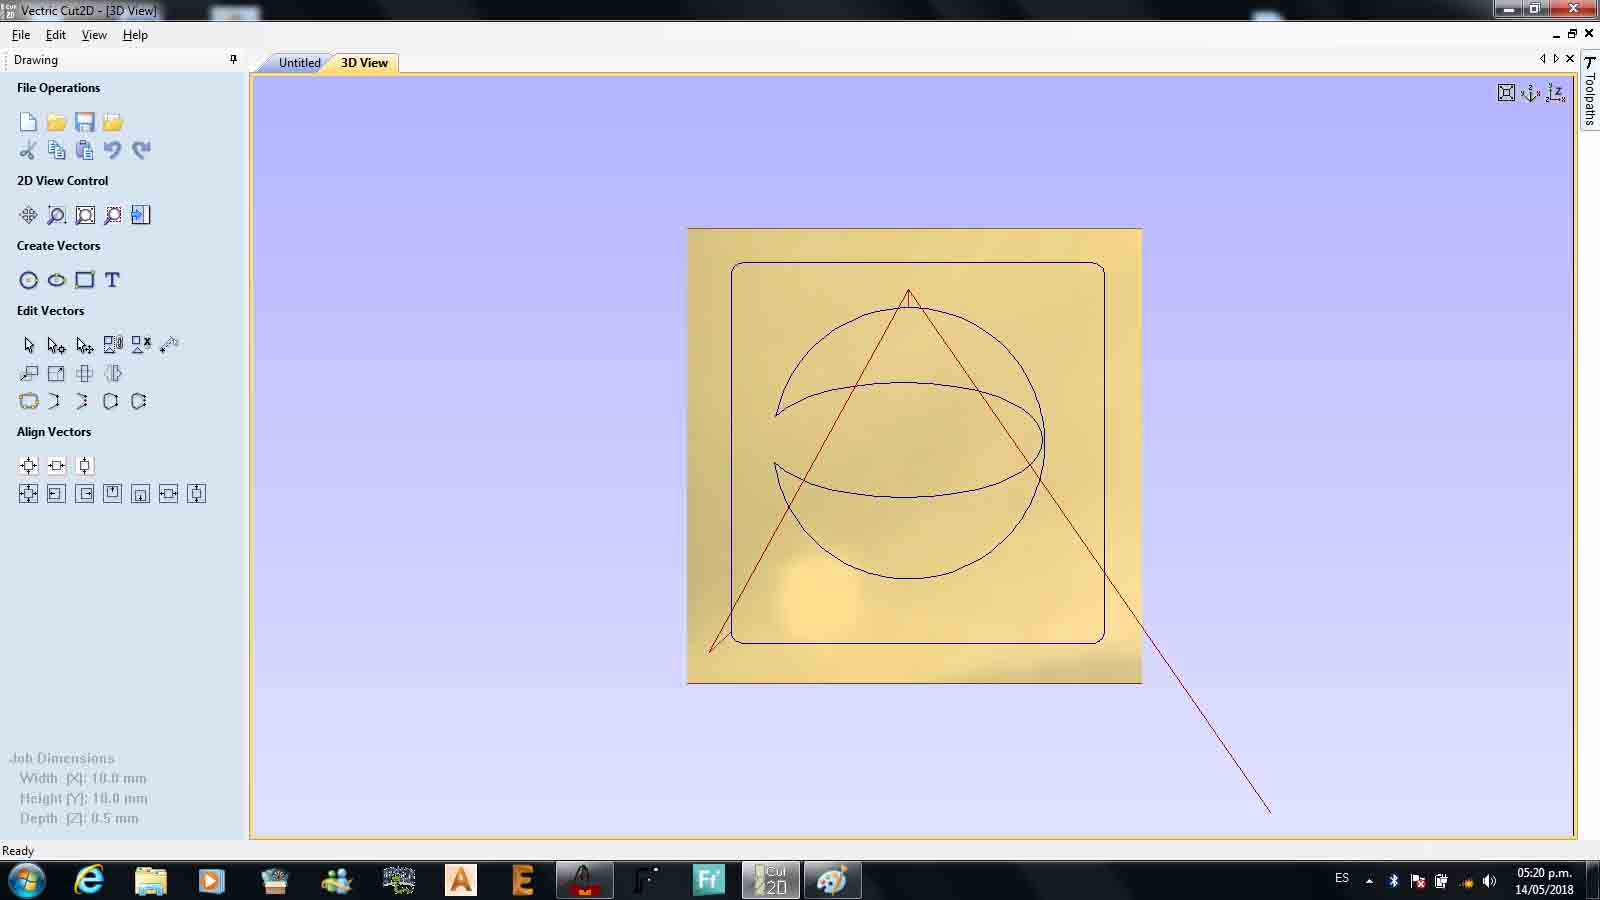 Fabricio Paredes Larroca Pi Cnc Projects Buy Alamode Controller Calculator Raspberry This Drawing Was Made On The Router Moving Axes Manually